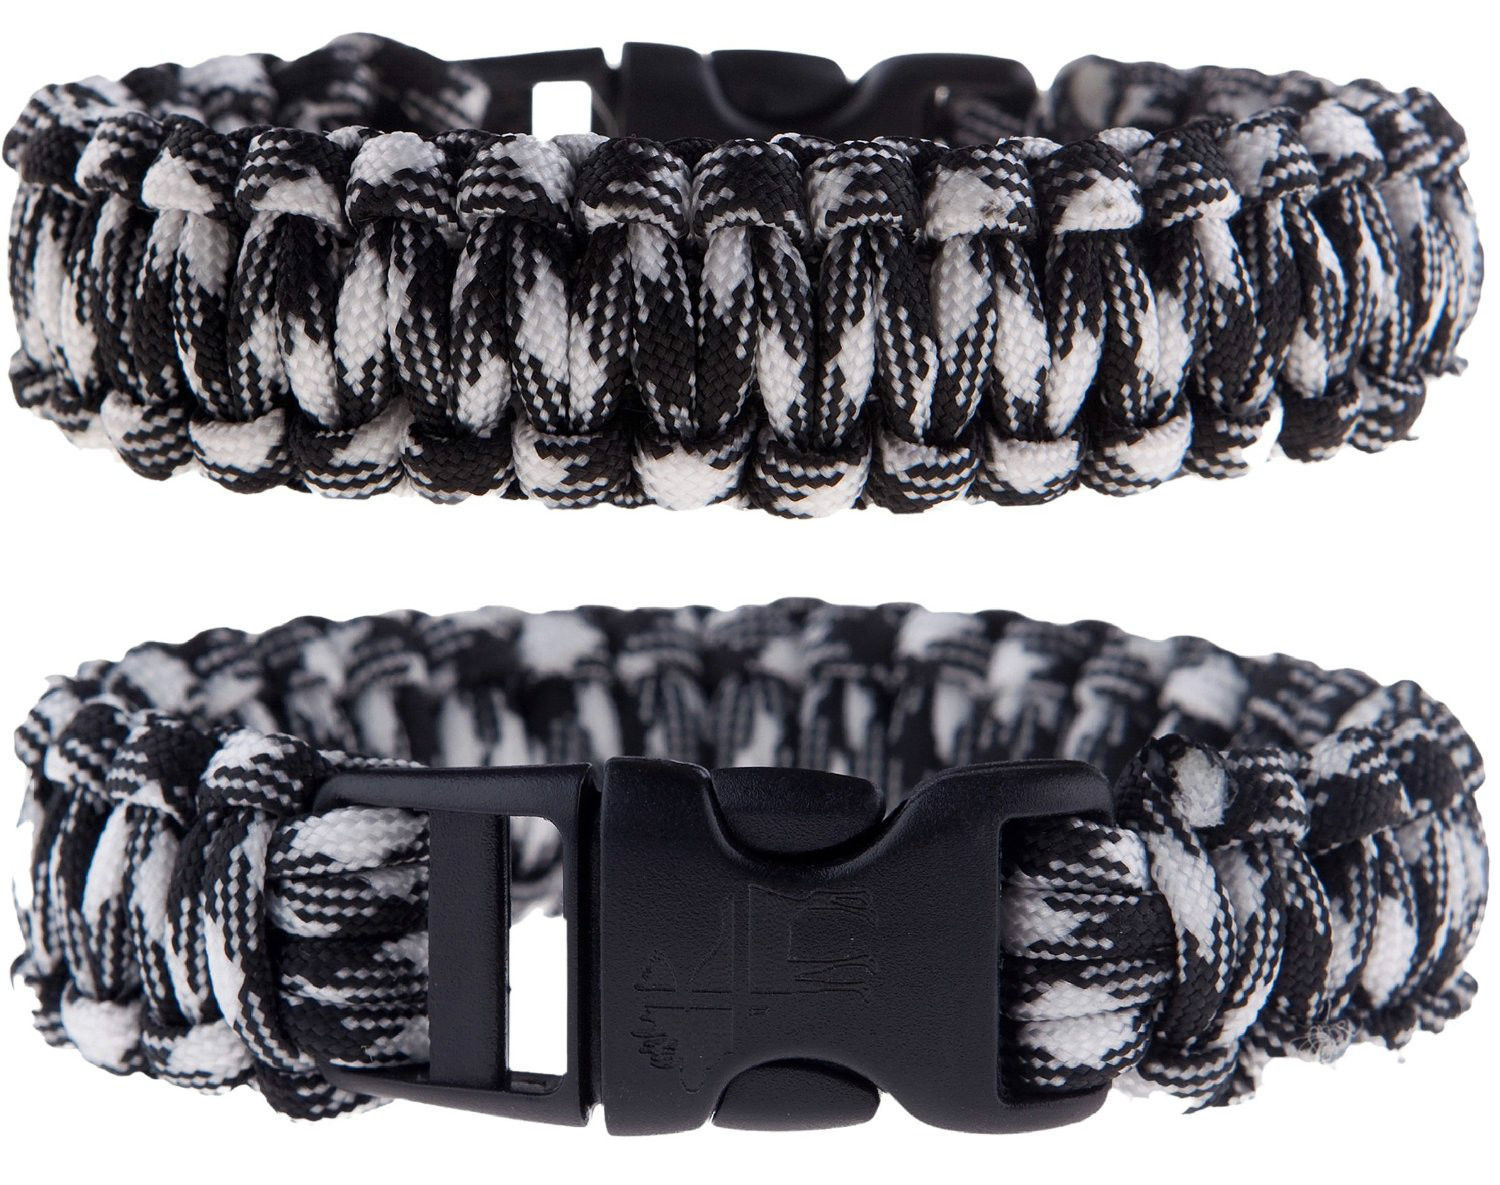 Primary image for Lot of 2 Paracord Survival Bracelets. Free medical wallet Card!